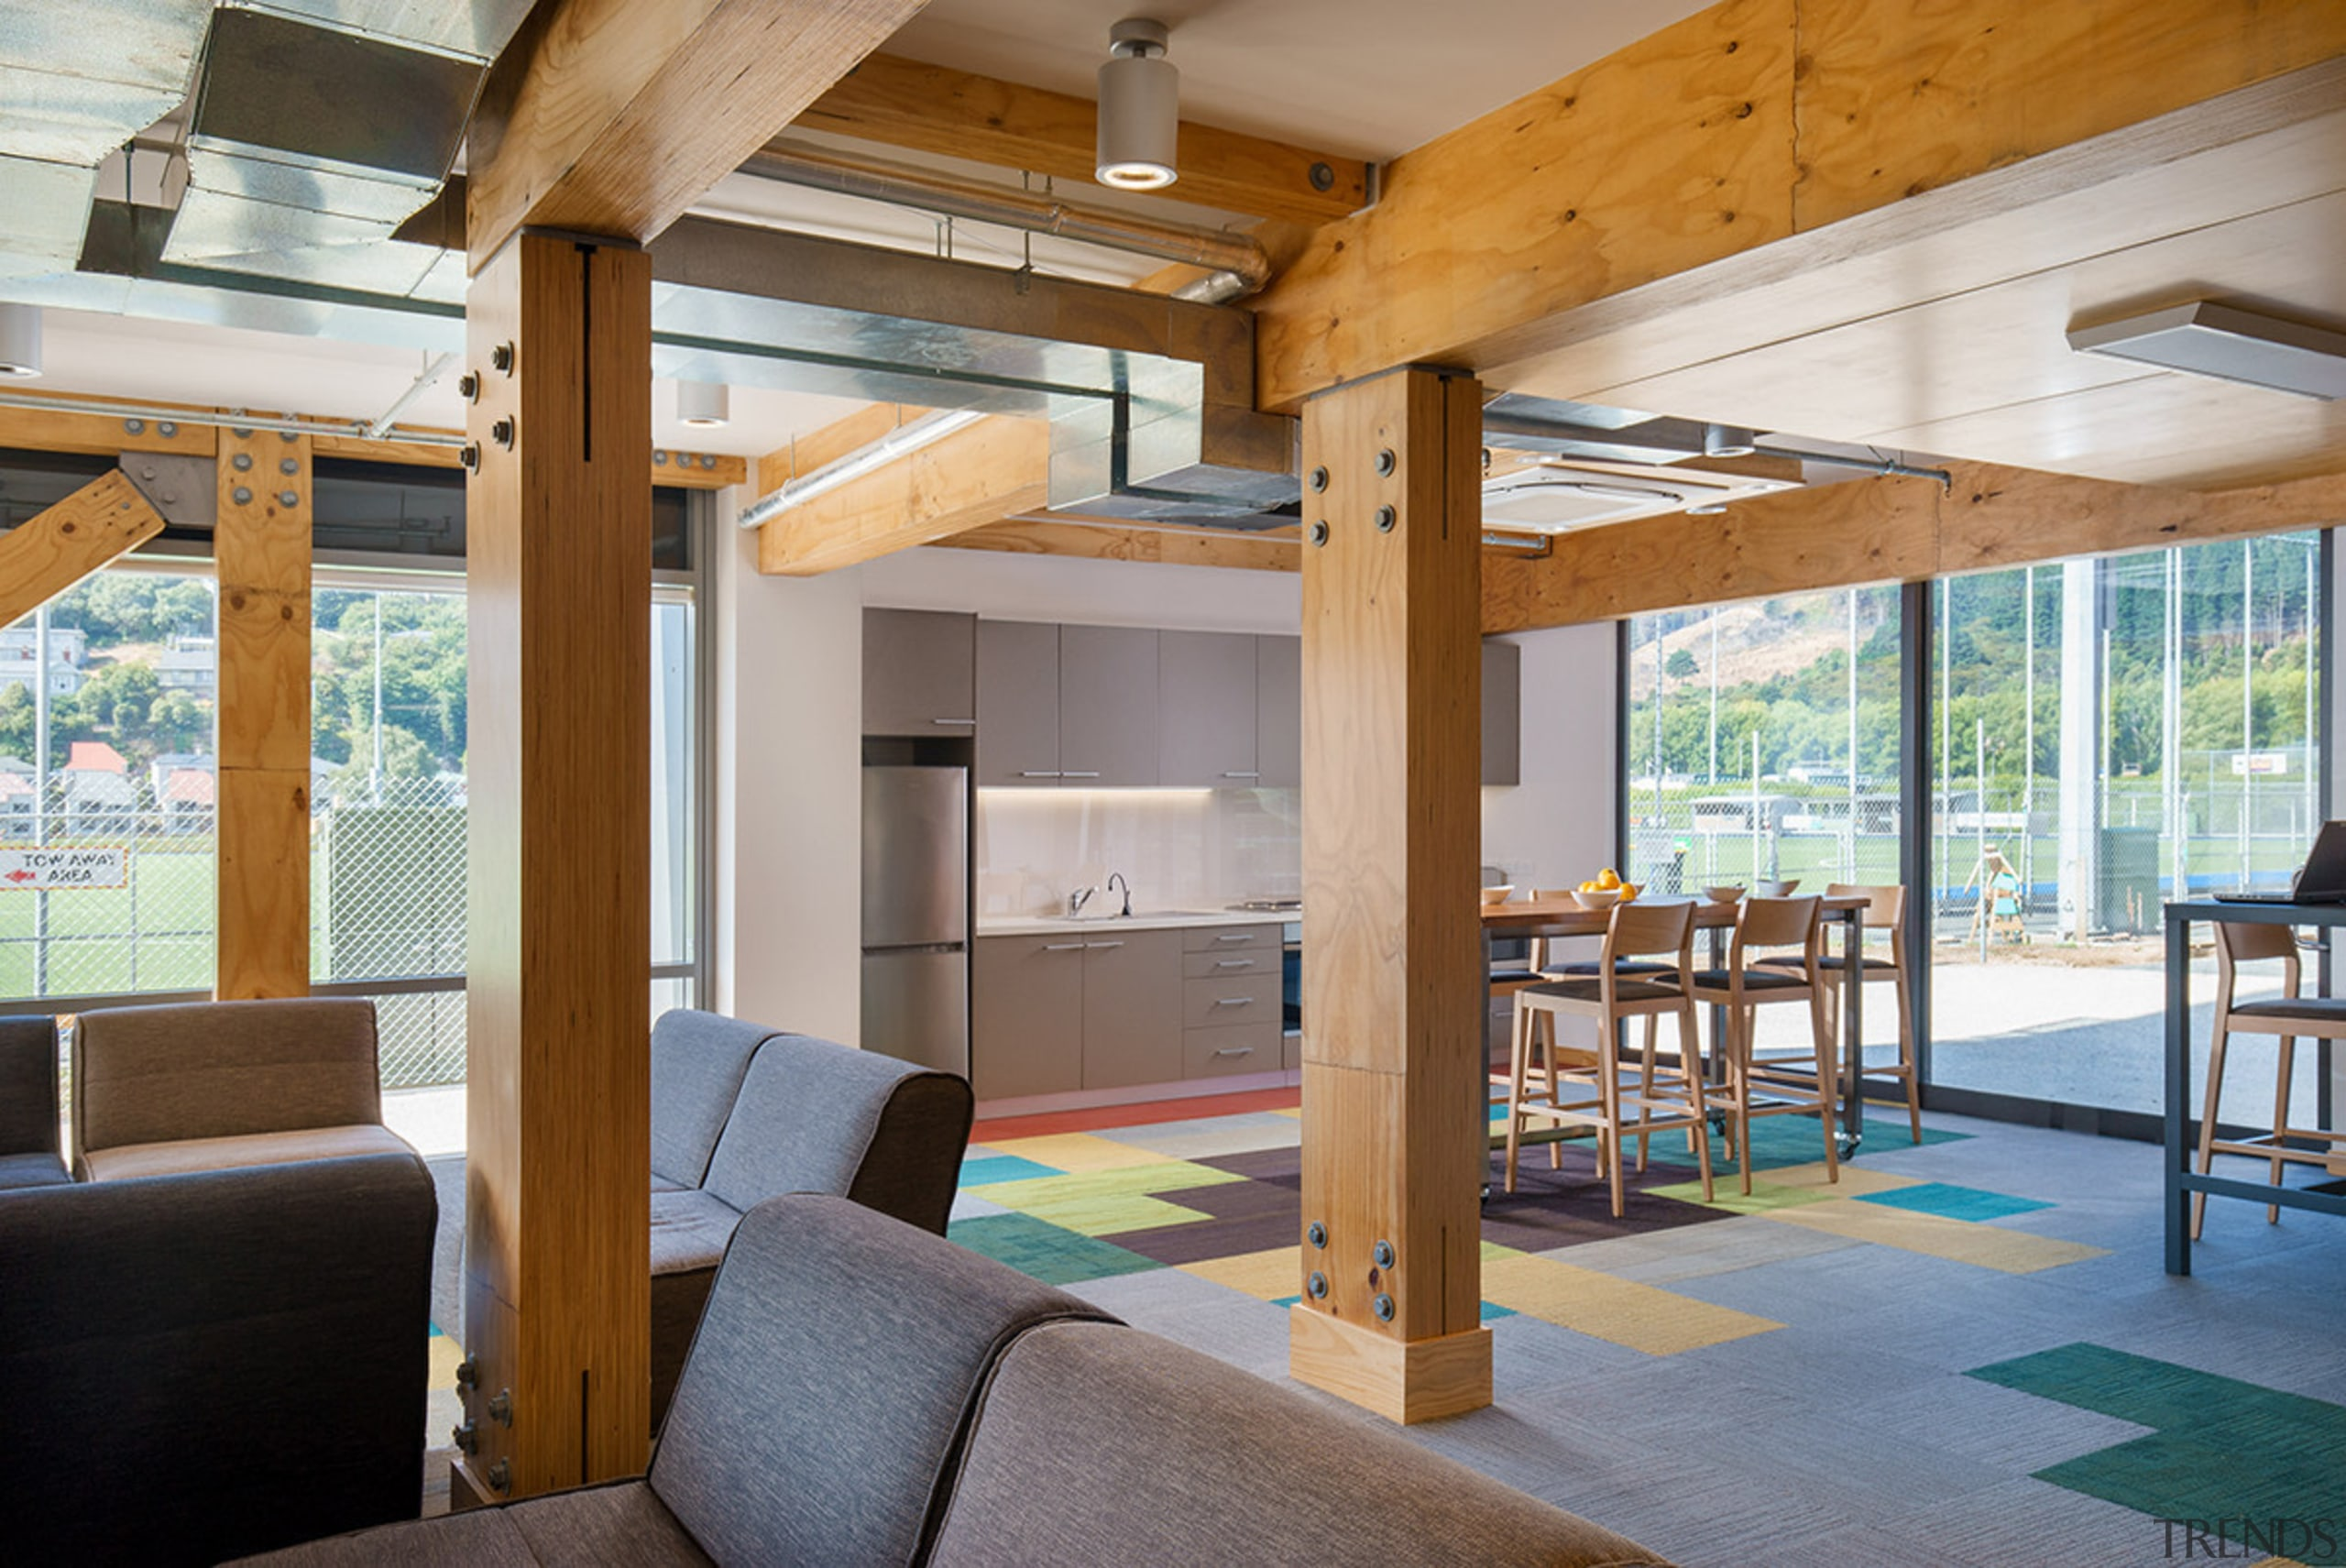 Exposed cross laminated timber beams add a touch house, interior design, real estate, gray